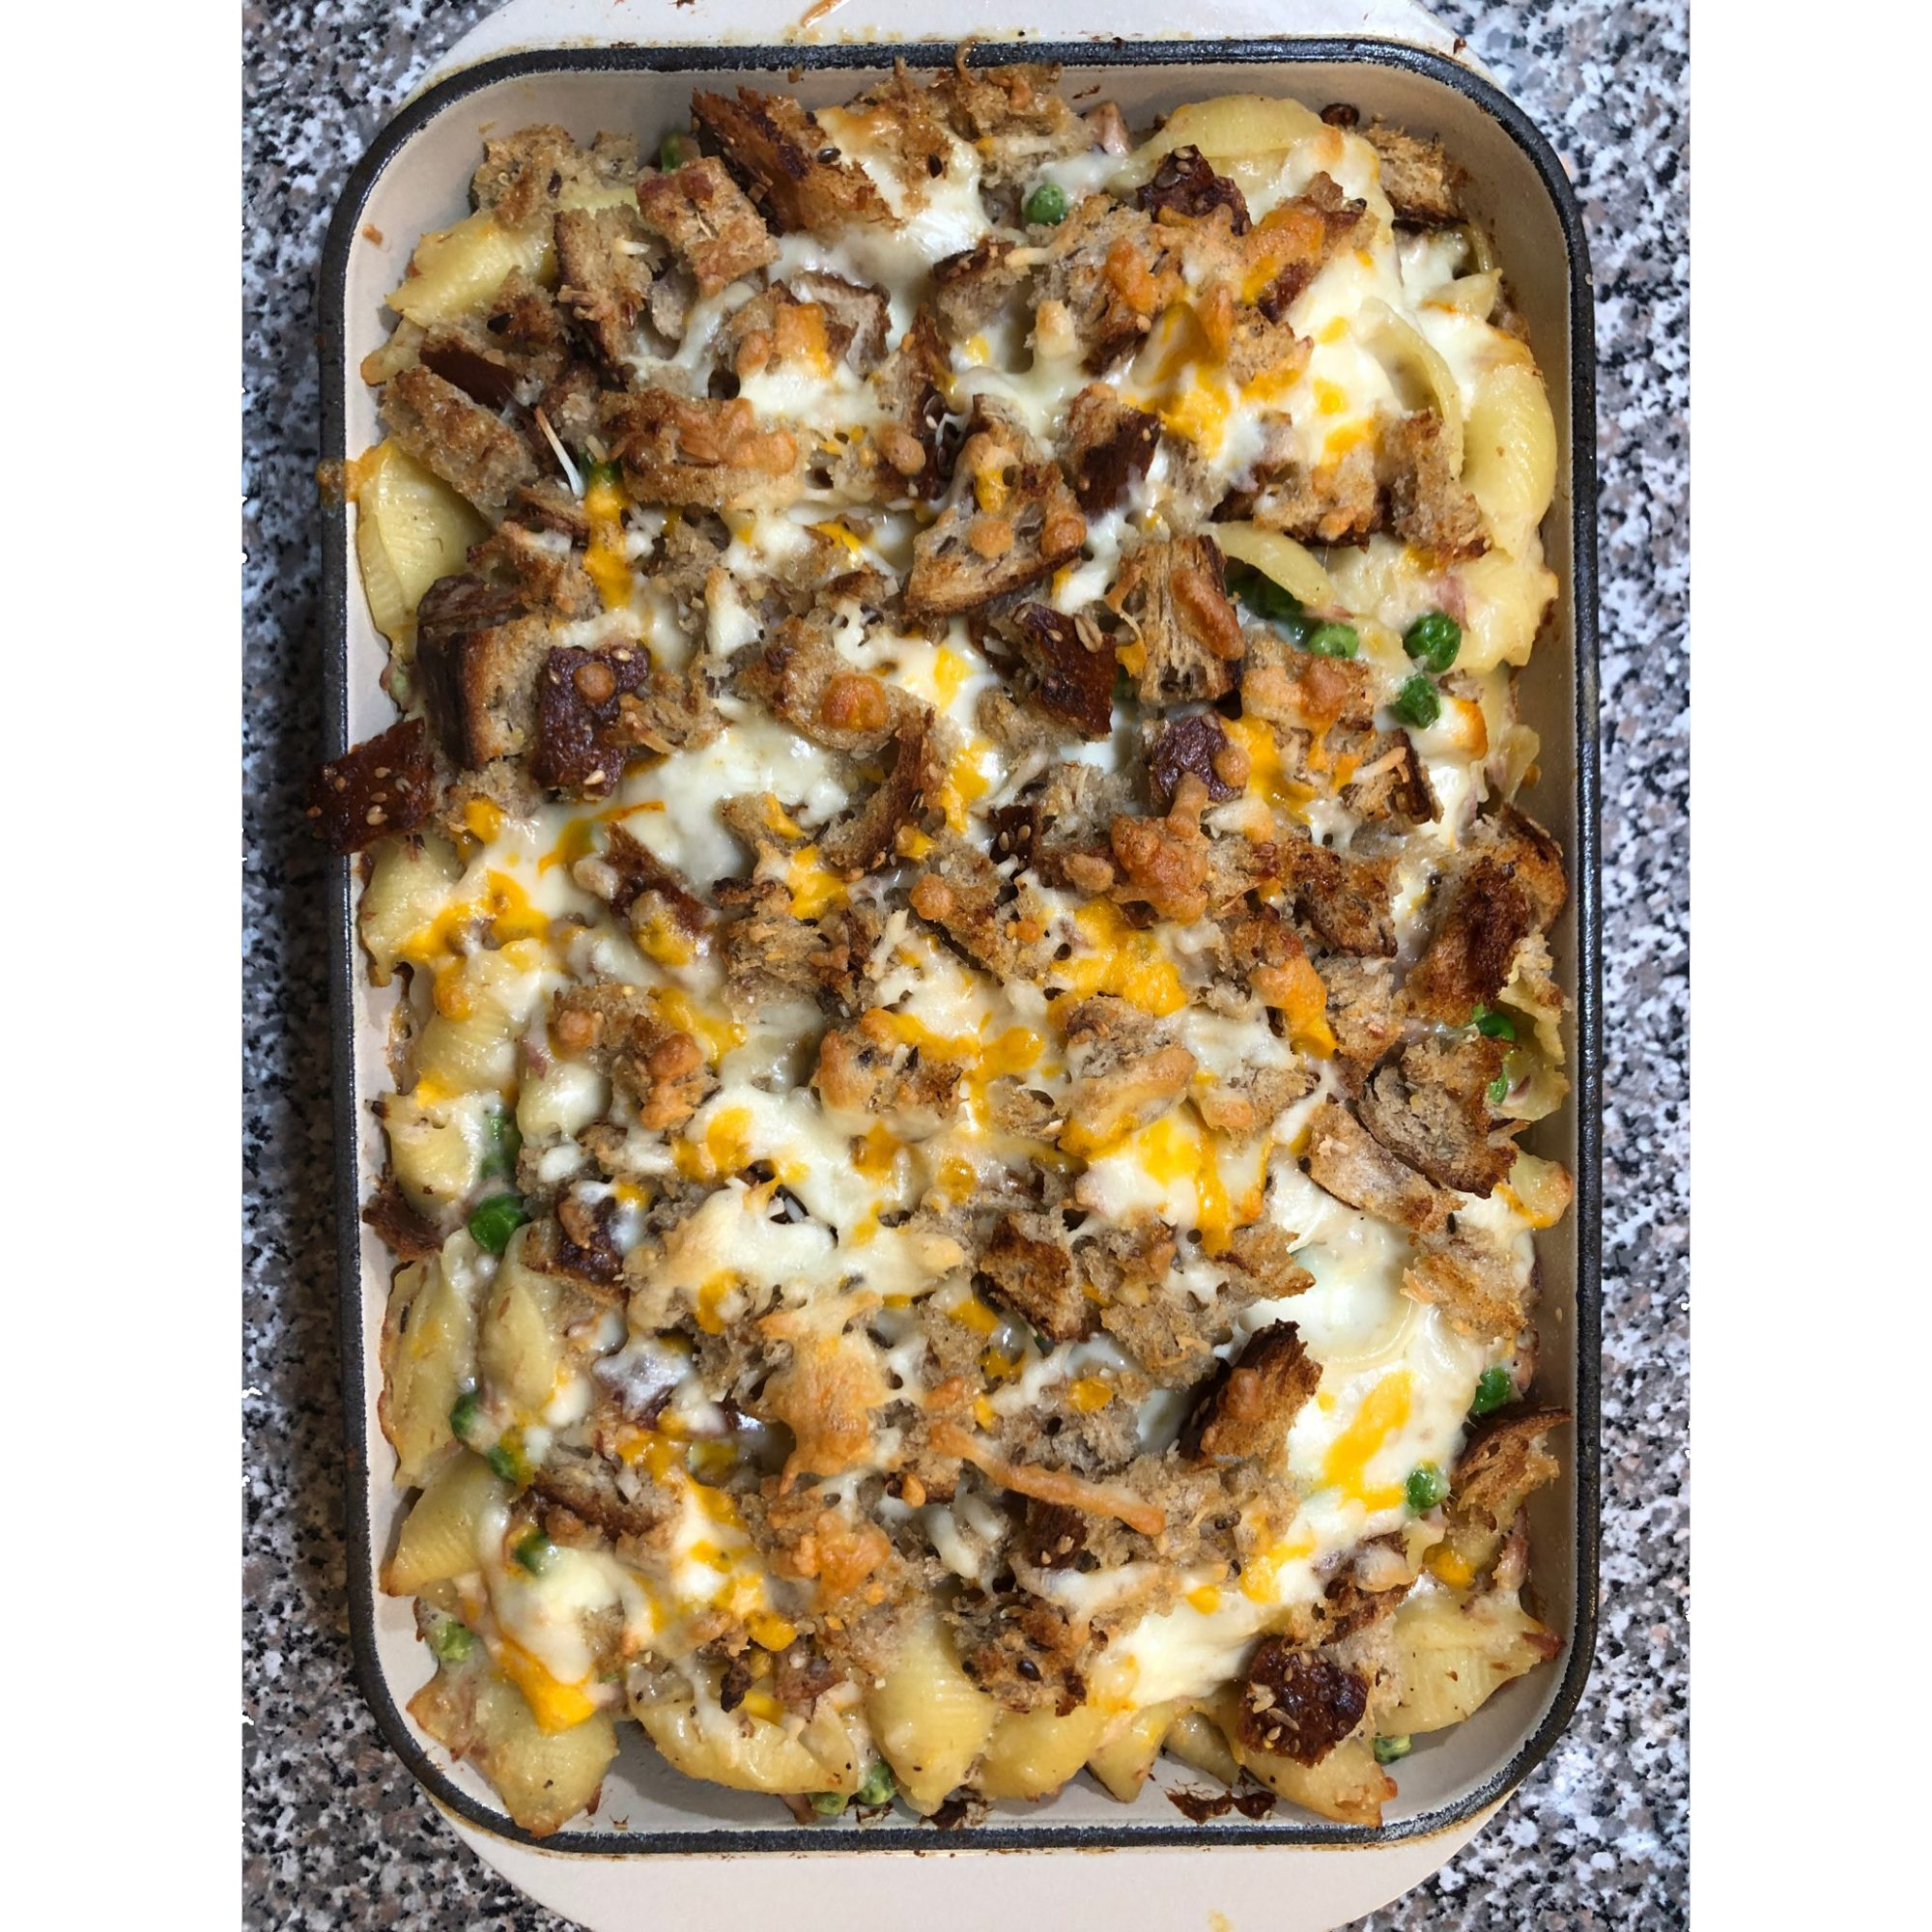 Tuna Noodle Casserole with Bechamel Sauce in a dish